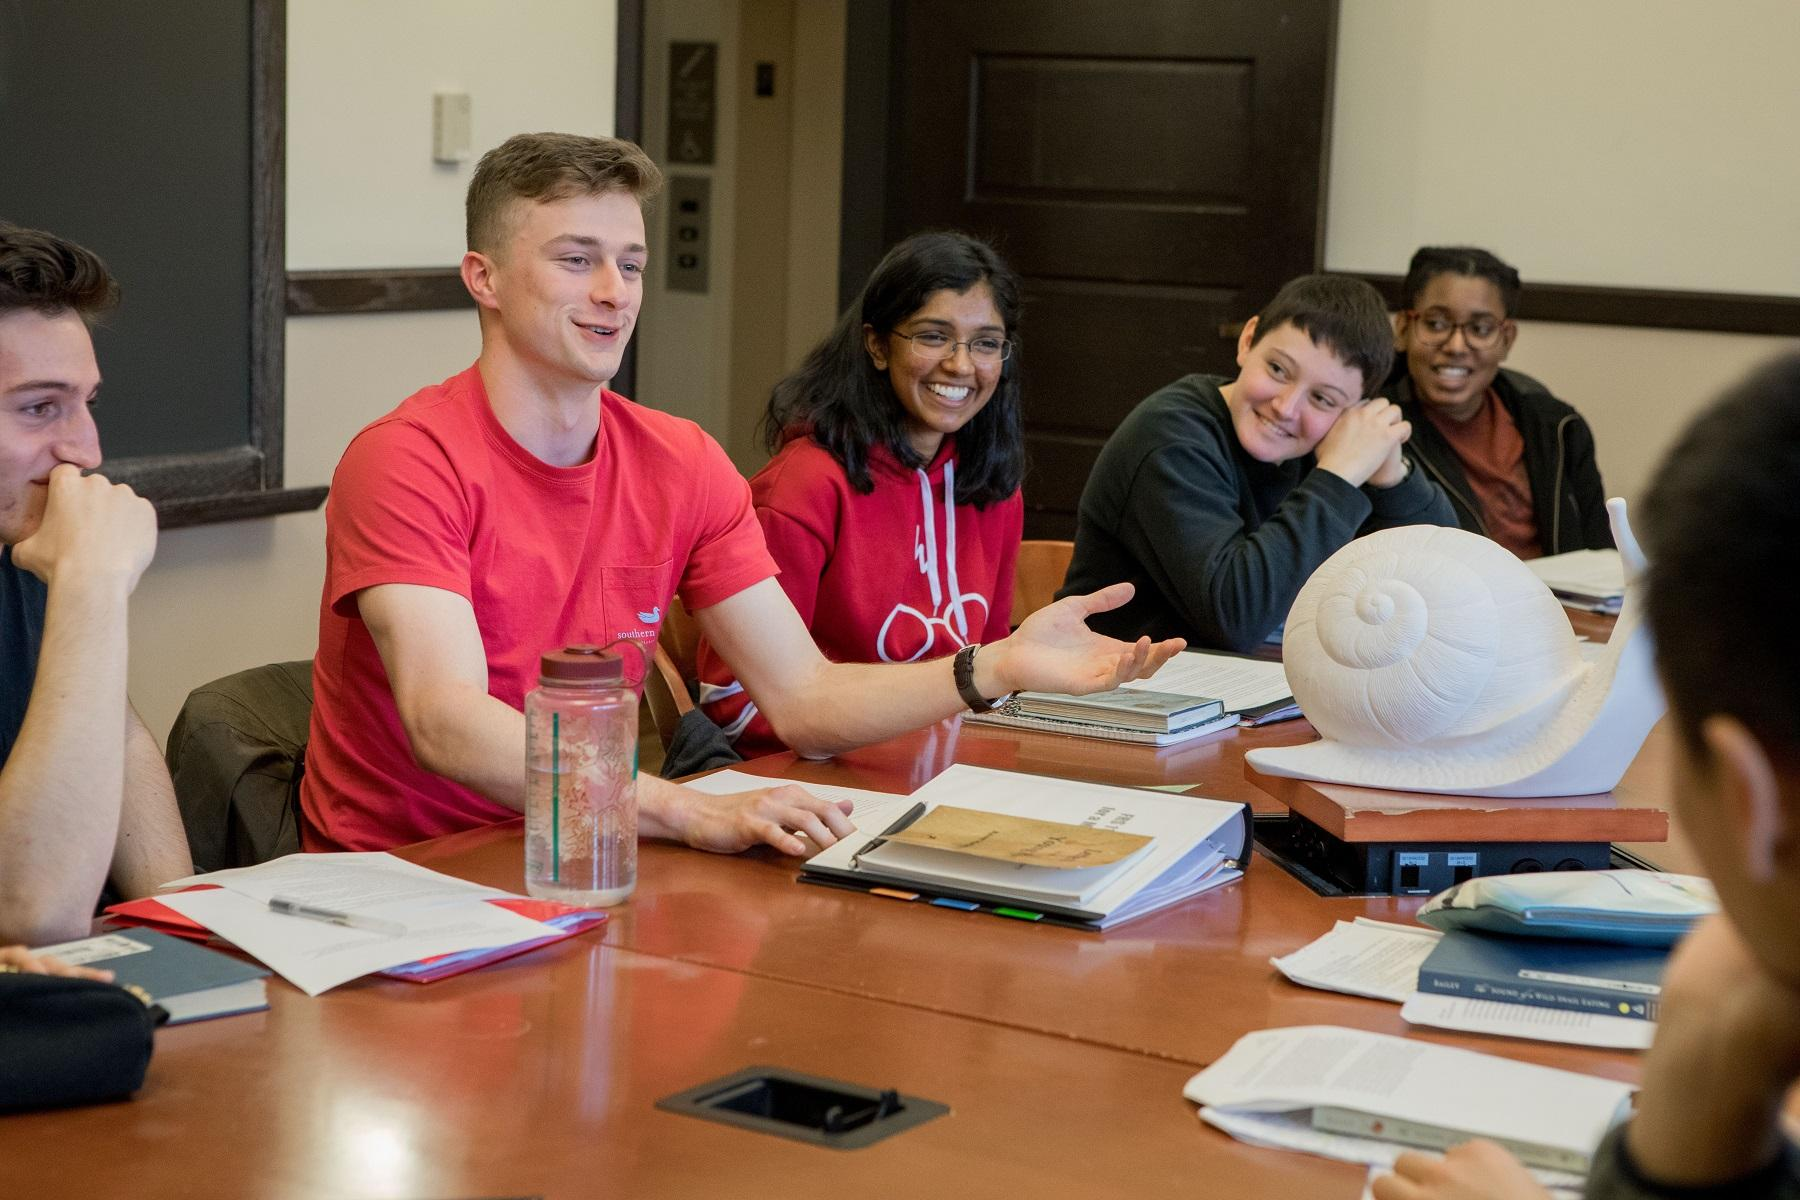 Student in a small discussion class surrounded by four students.